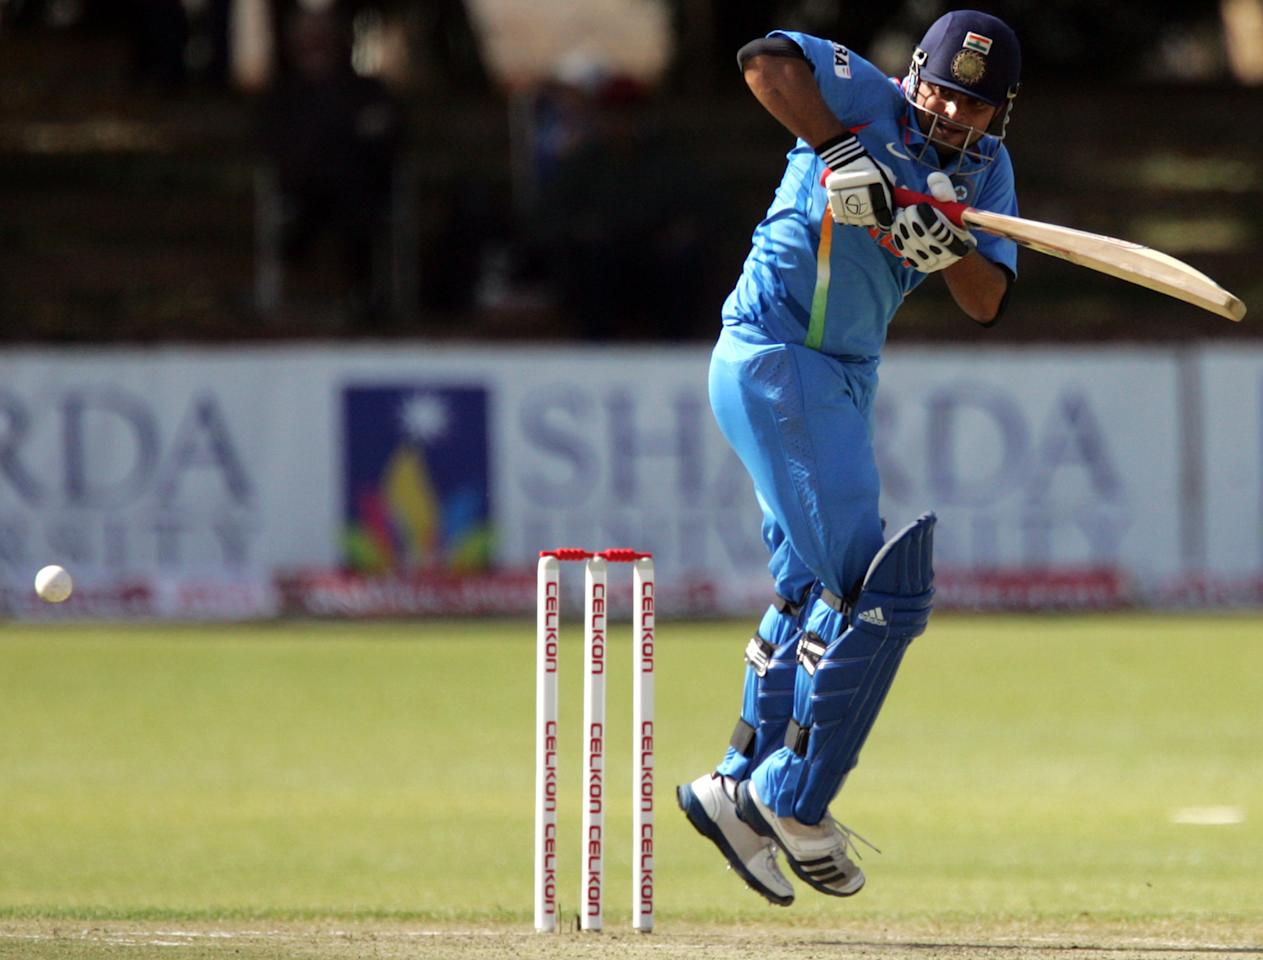 Indian batsman Suresh Raina is pictured in action during the 4th match of the 5-match cricket ODI series between Zimbabwe and India at Queen's Sports Club in Harare on August 1, 2013. AFP/PHOTO Jekesai Njikizana        (Photo credit should read JEKESAI NJIKIZANA/AFP/Getty Images)